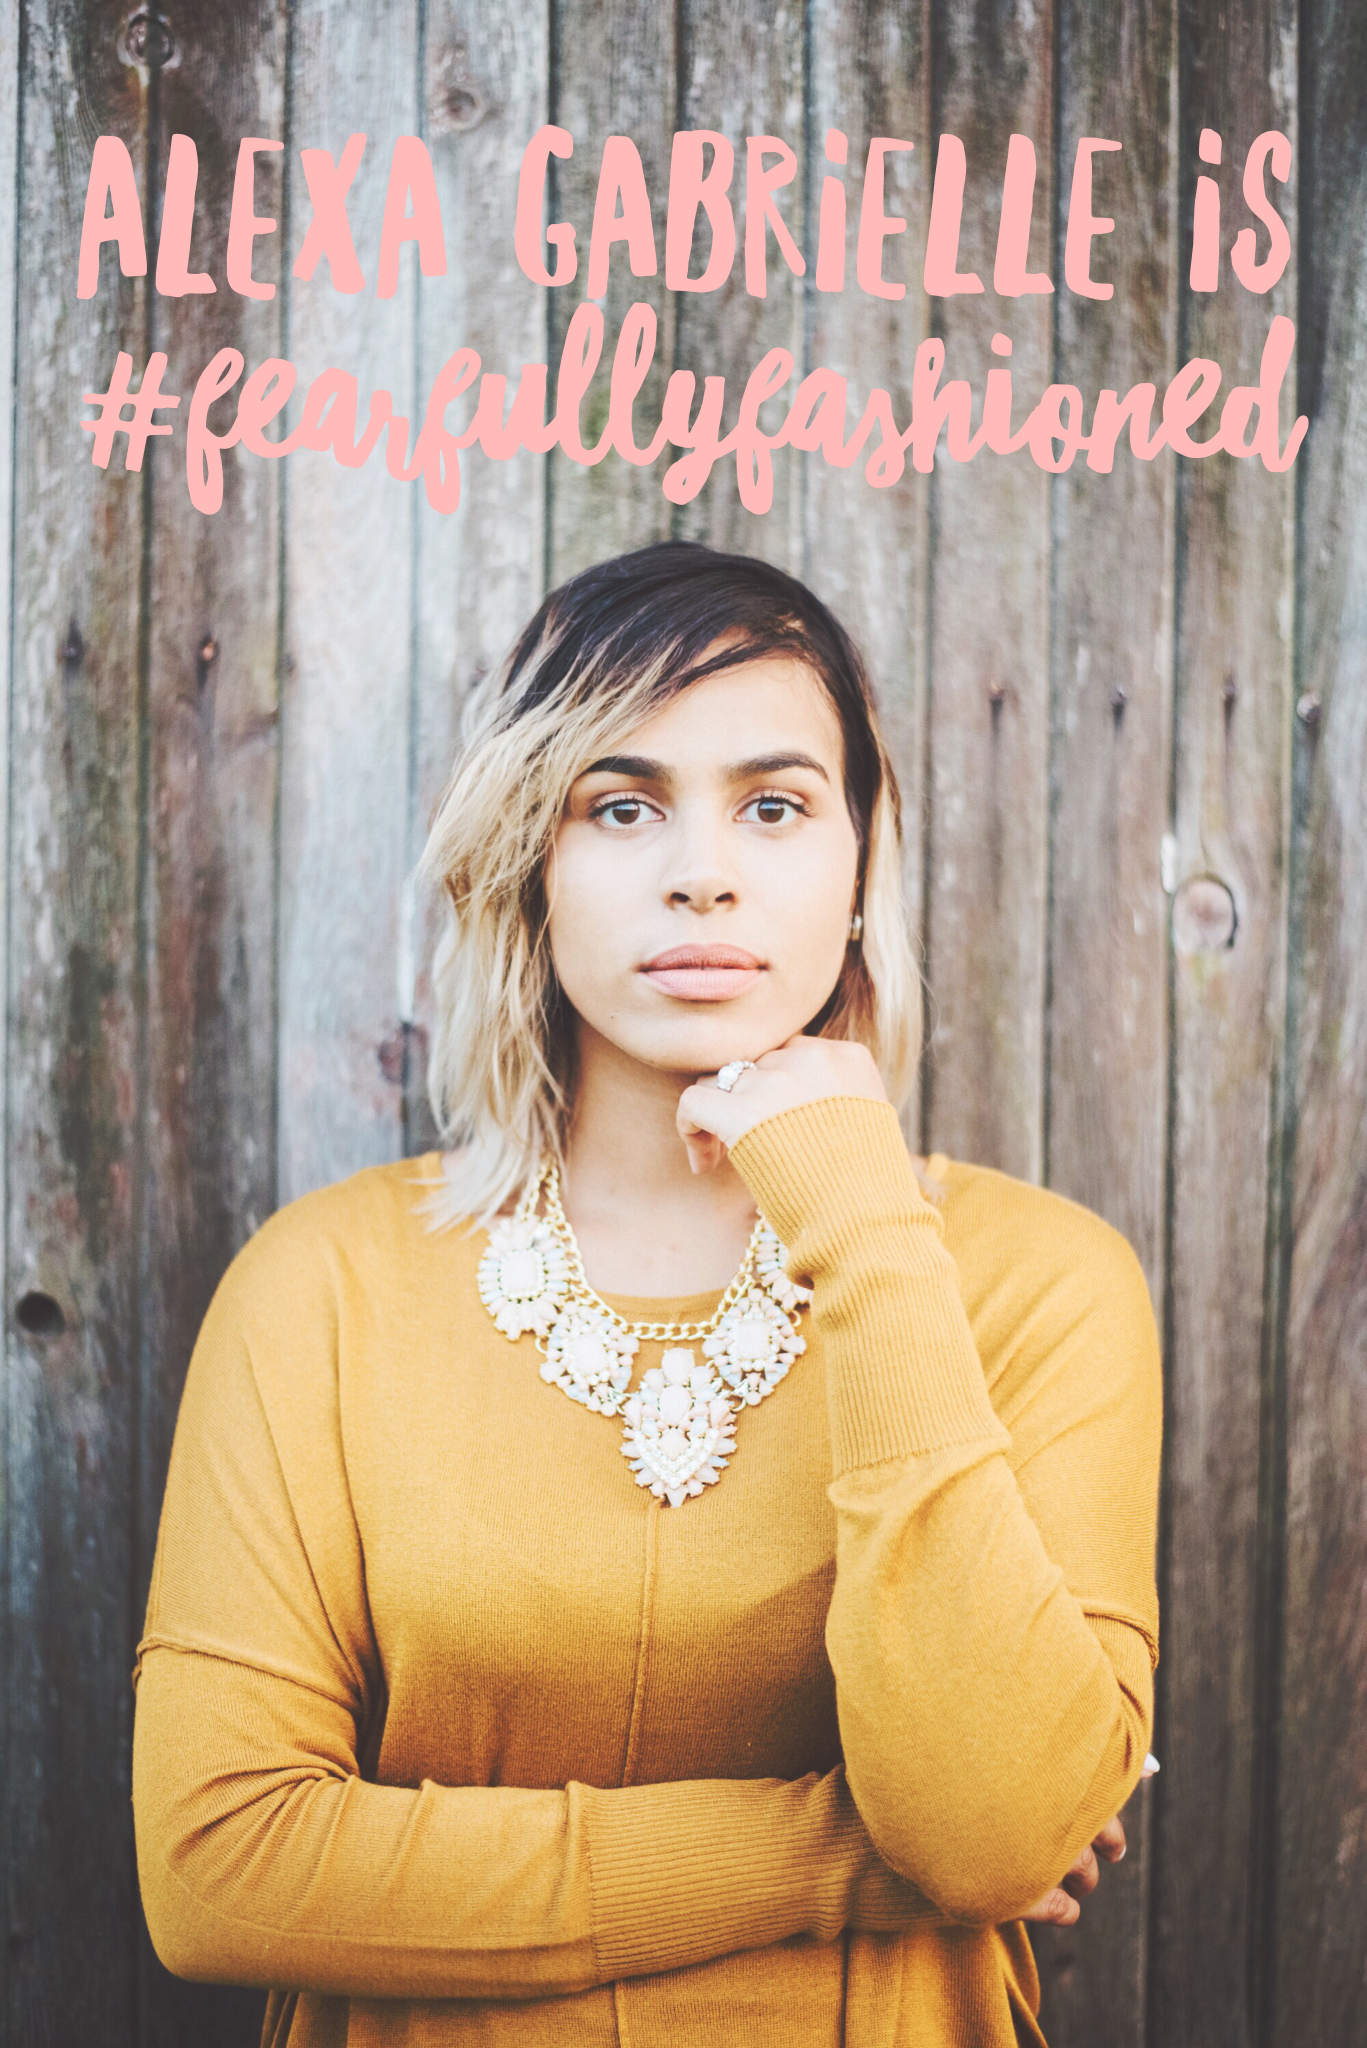 """Alexa Gabrielle is #FearfullyFashioned 